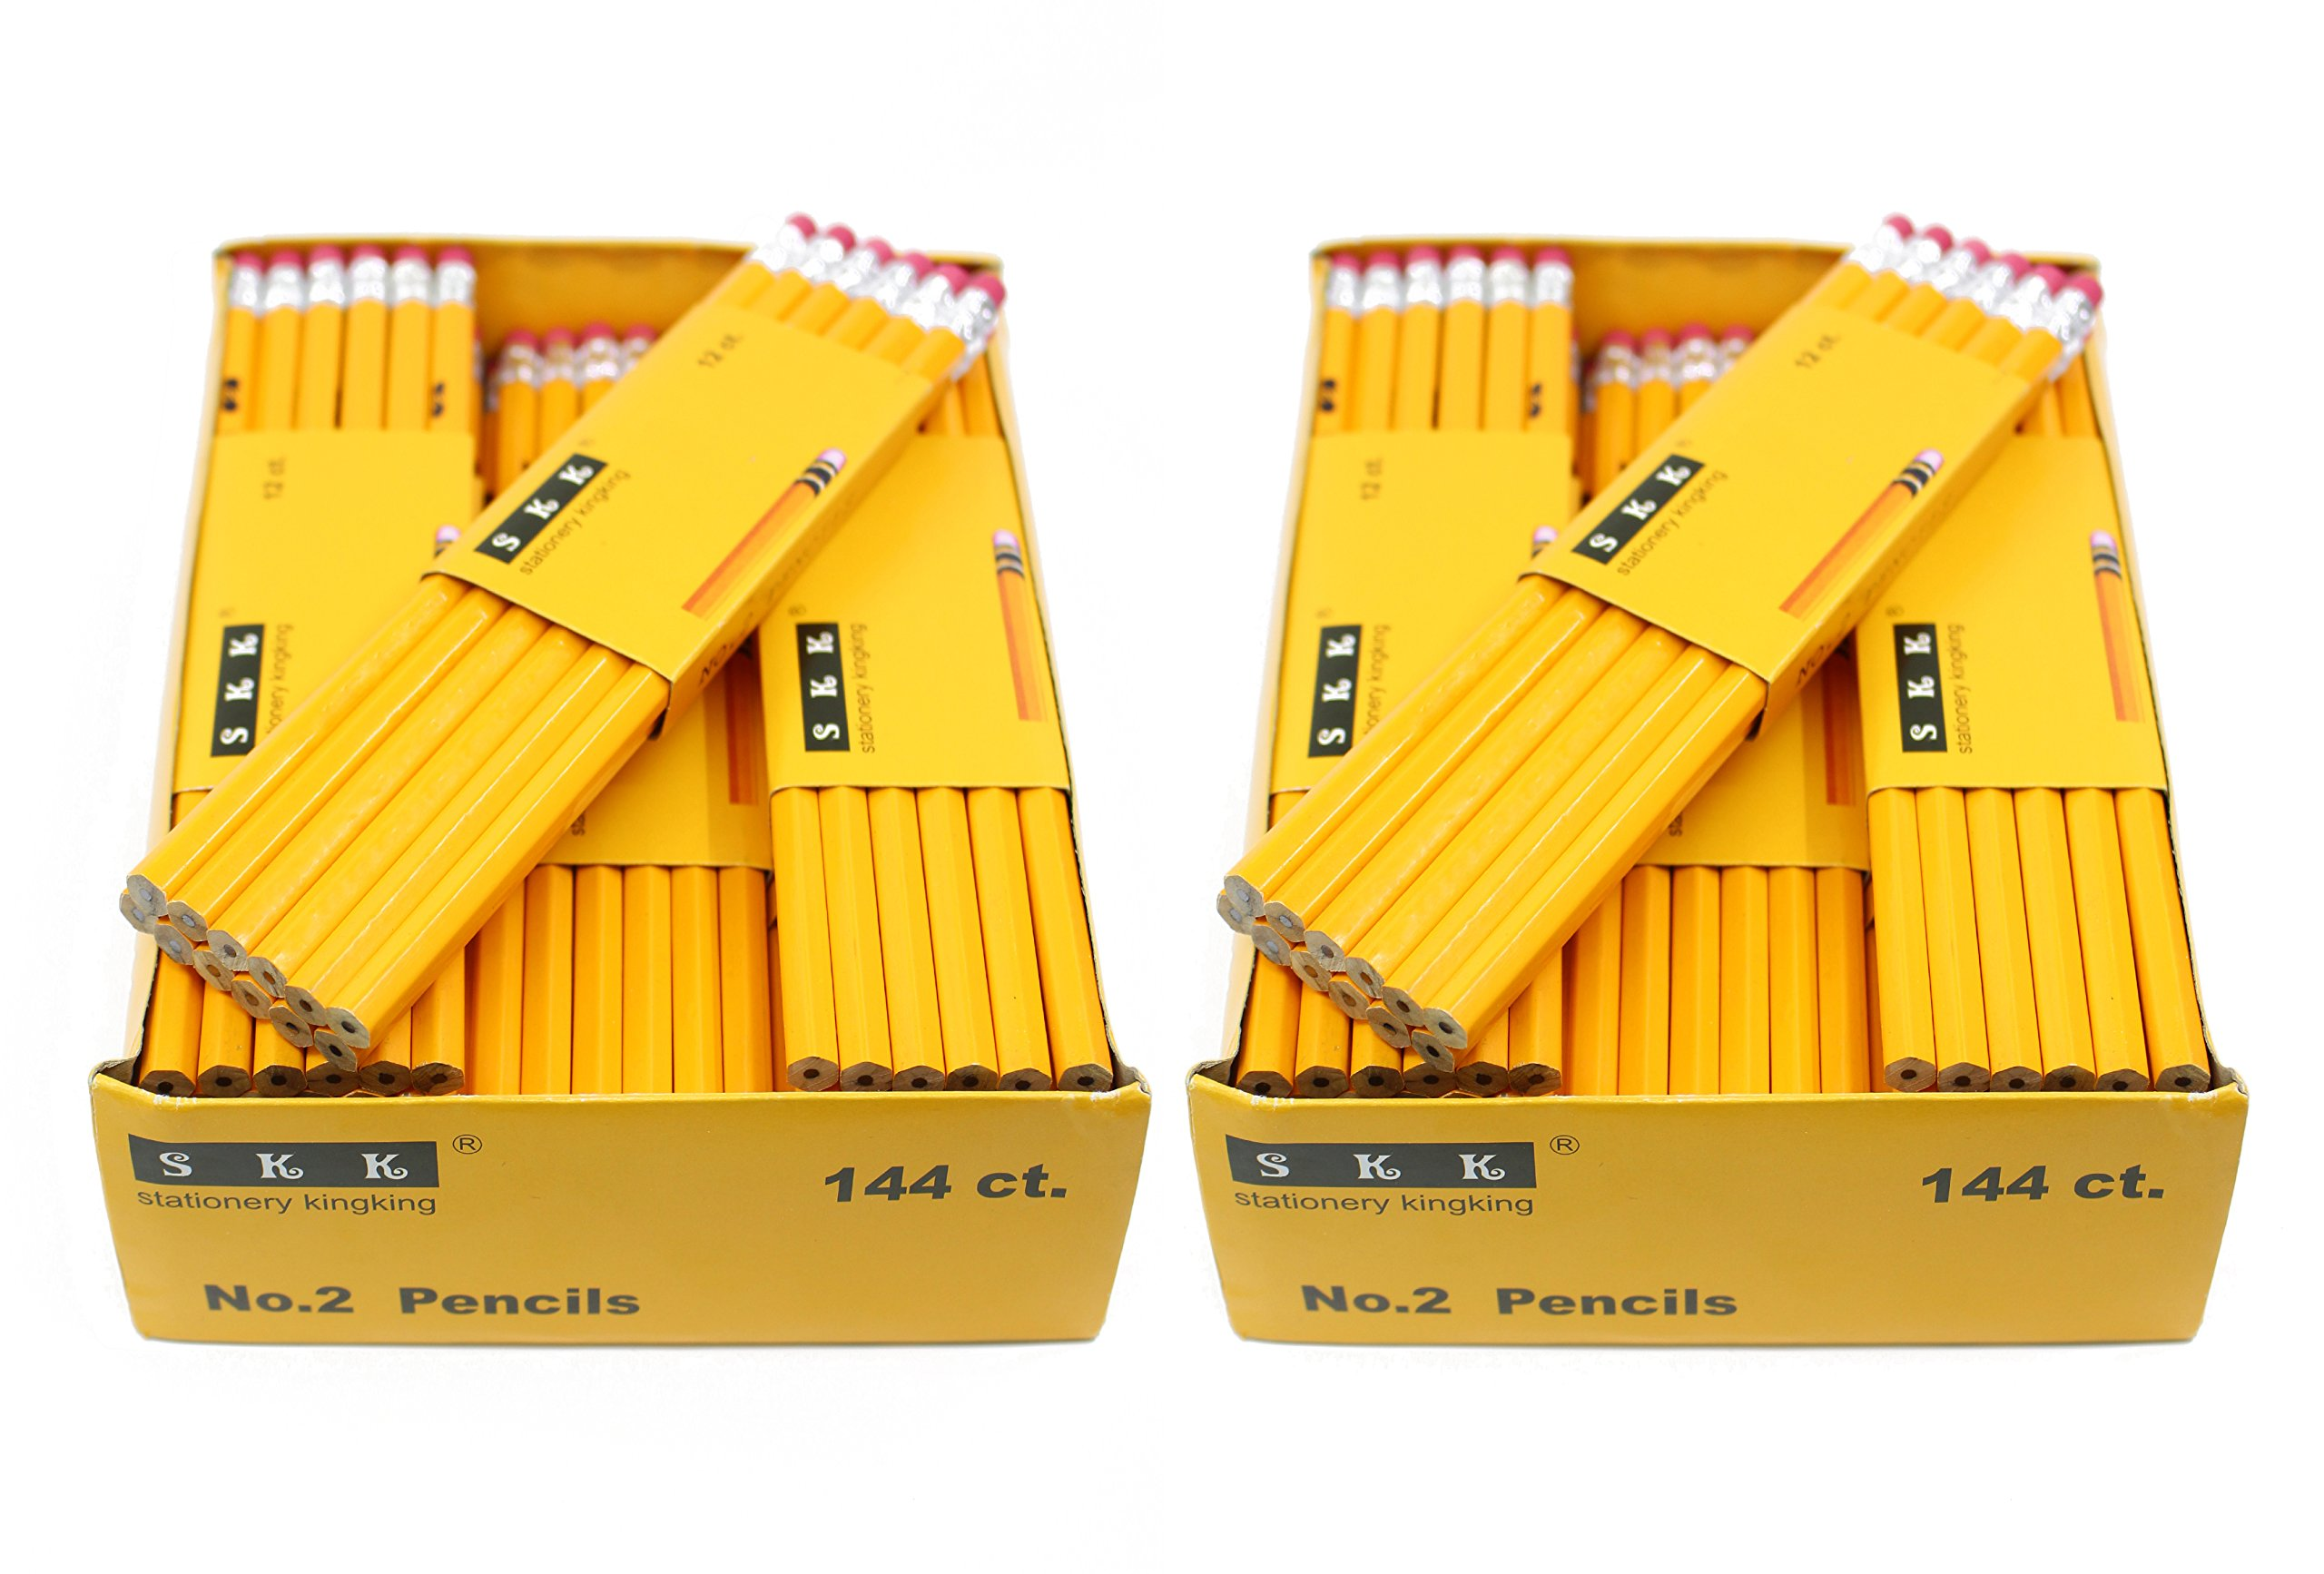 SKKSTATIONERY Pencils, #2 HB, 144/box, Yellow Wood Pencil Great Office Supplies For Writing, Drawing & Sketching, Pack of 2